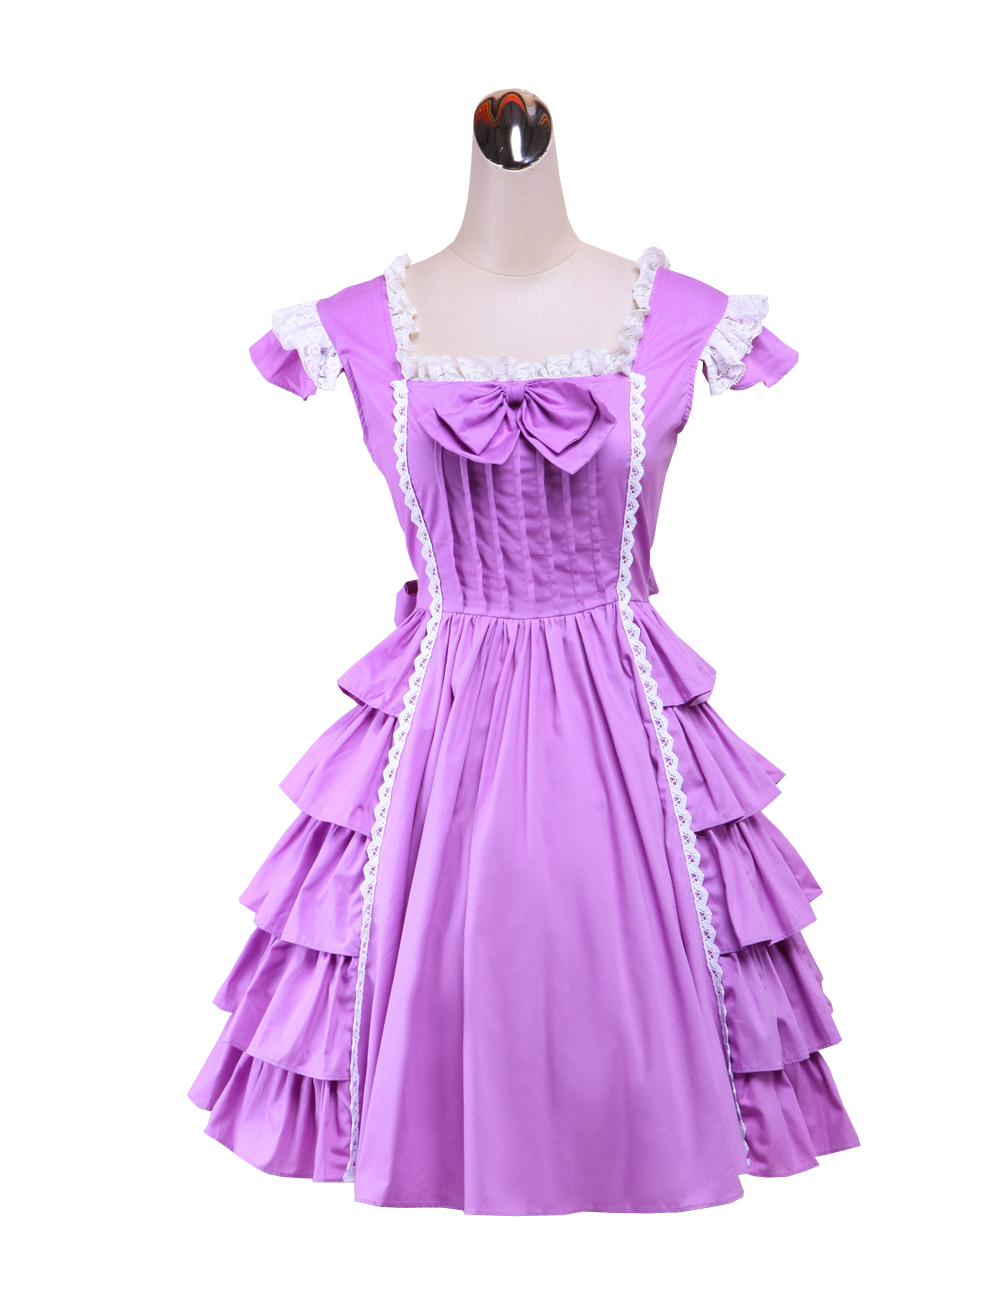 Primary image for ZeroMart Purple Cotton Bow Ruffles Sweet Vintage Victorian School Lolita Dress